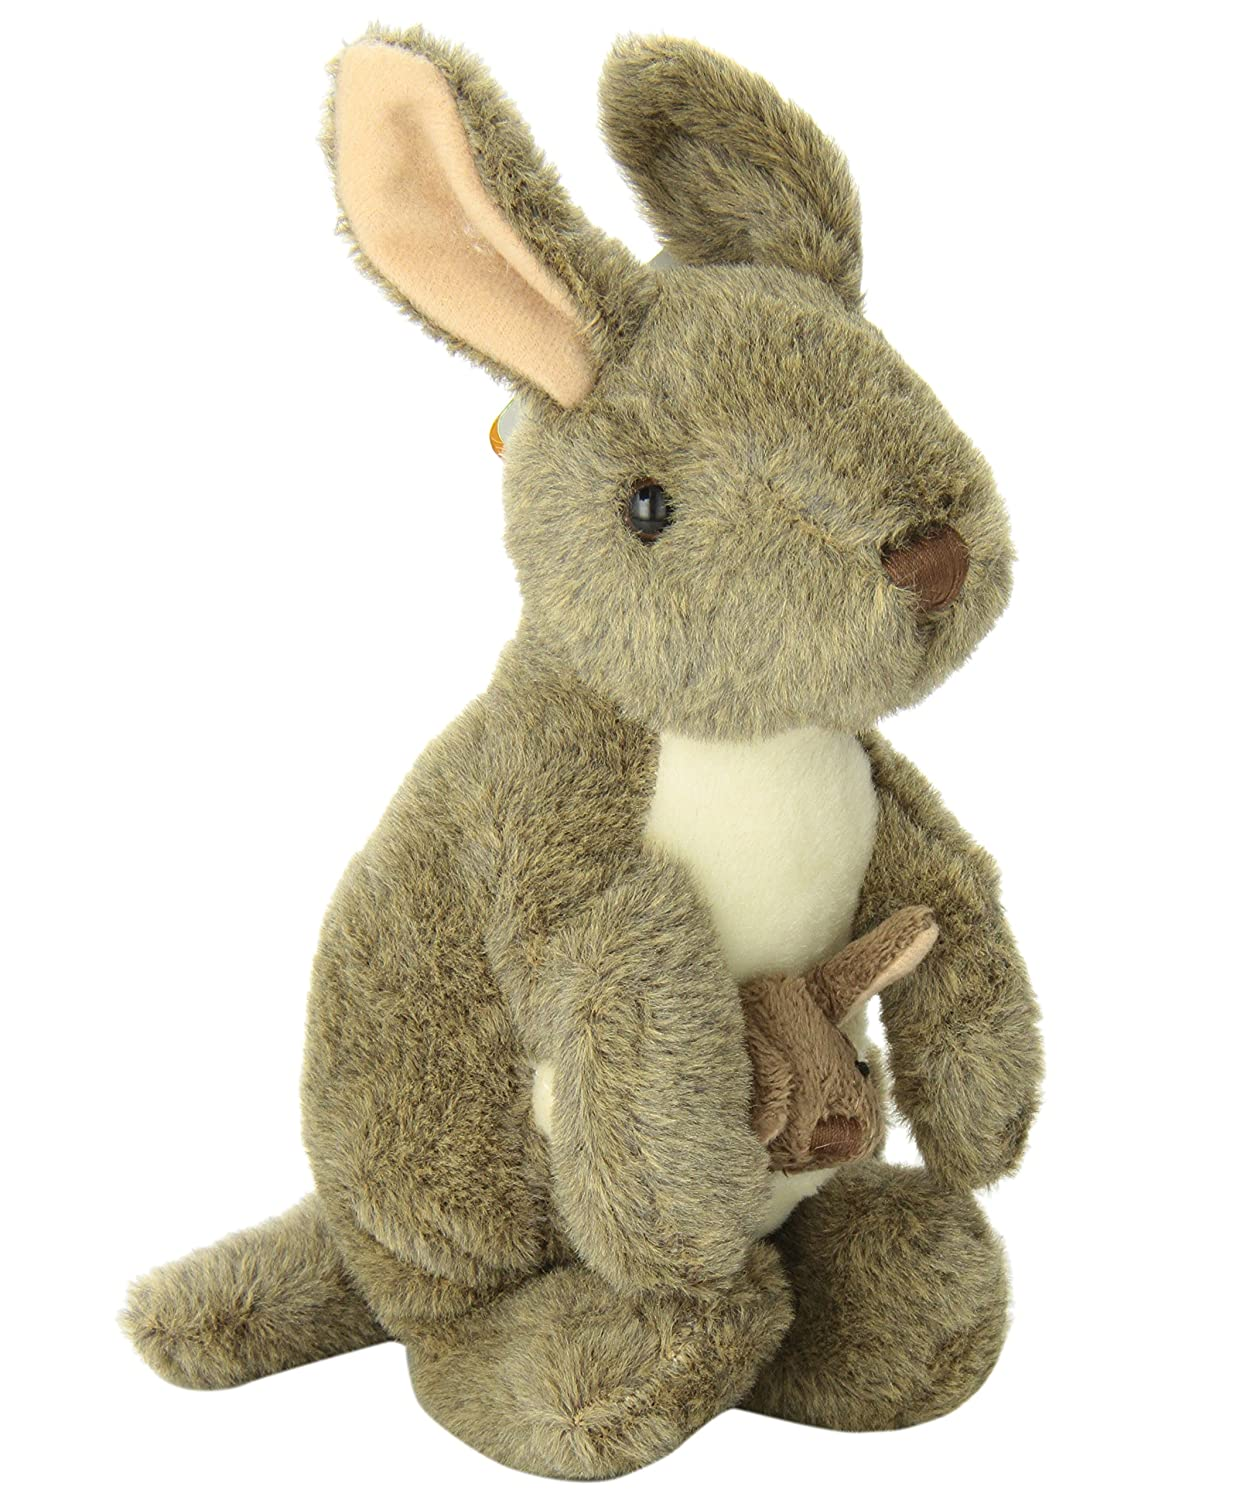 "Amazon.com: Wild Republic CK-Mini Kangaroo with Joey 8"" Animal Plush: Toys & Games"